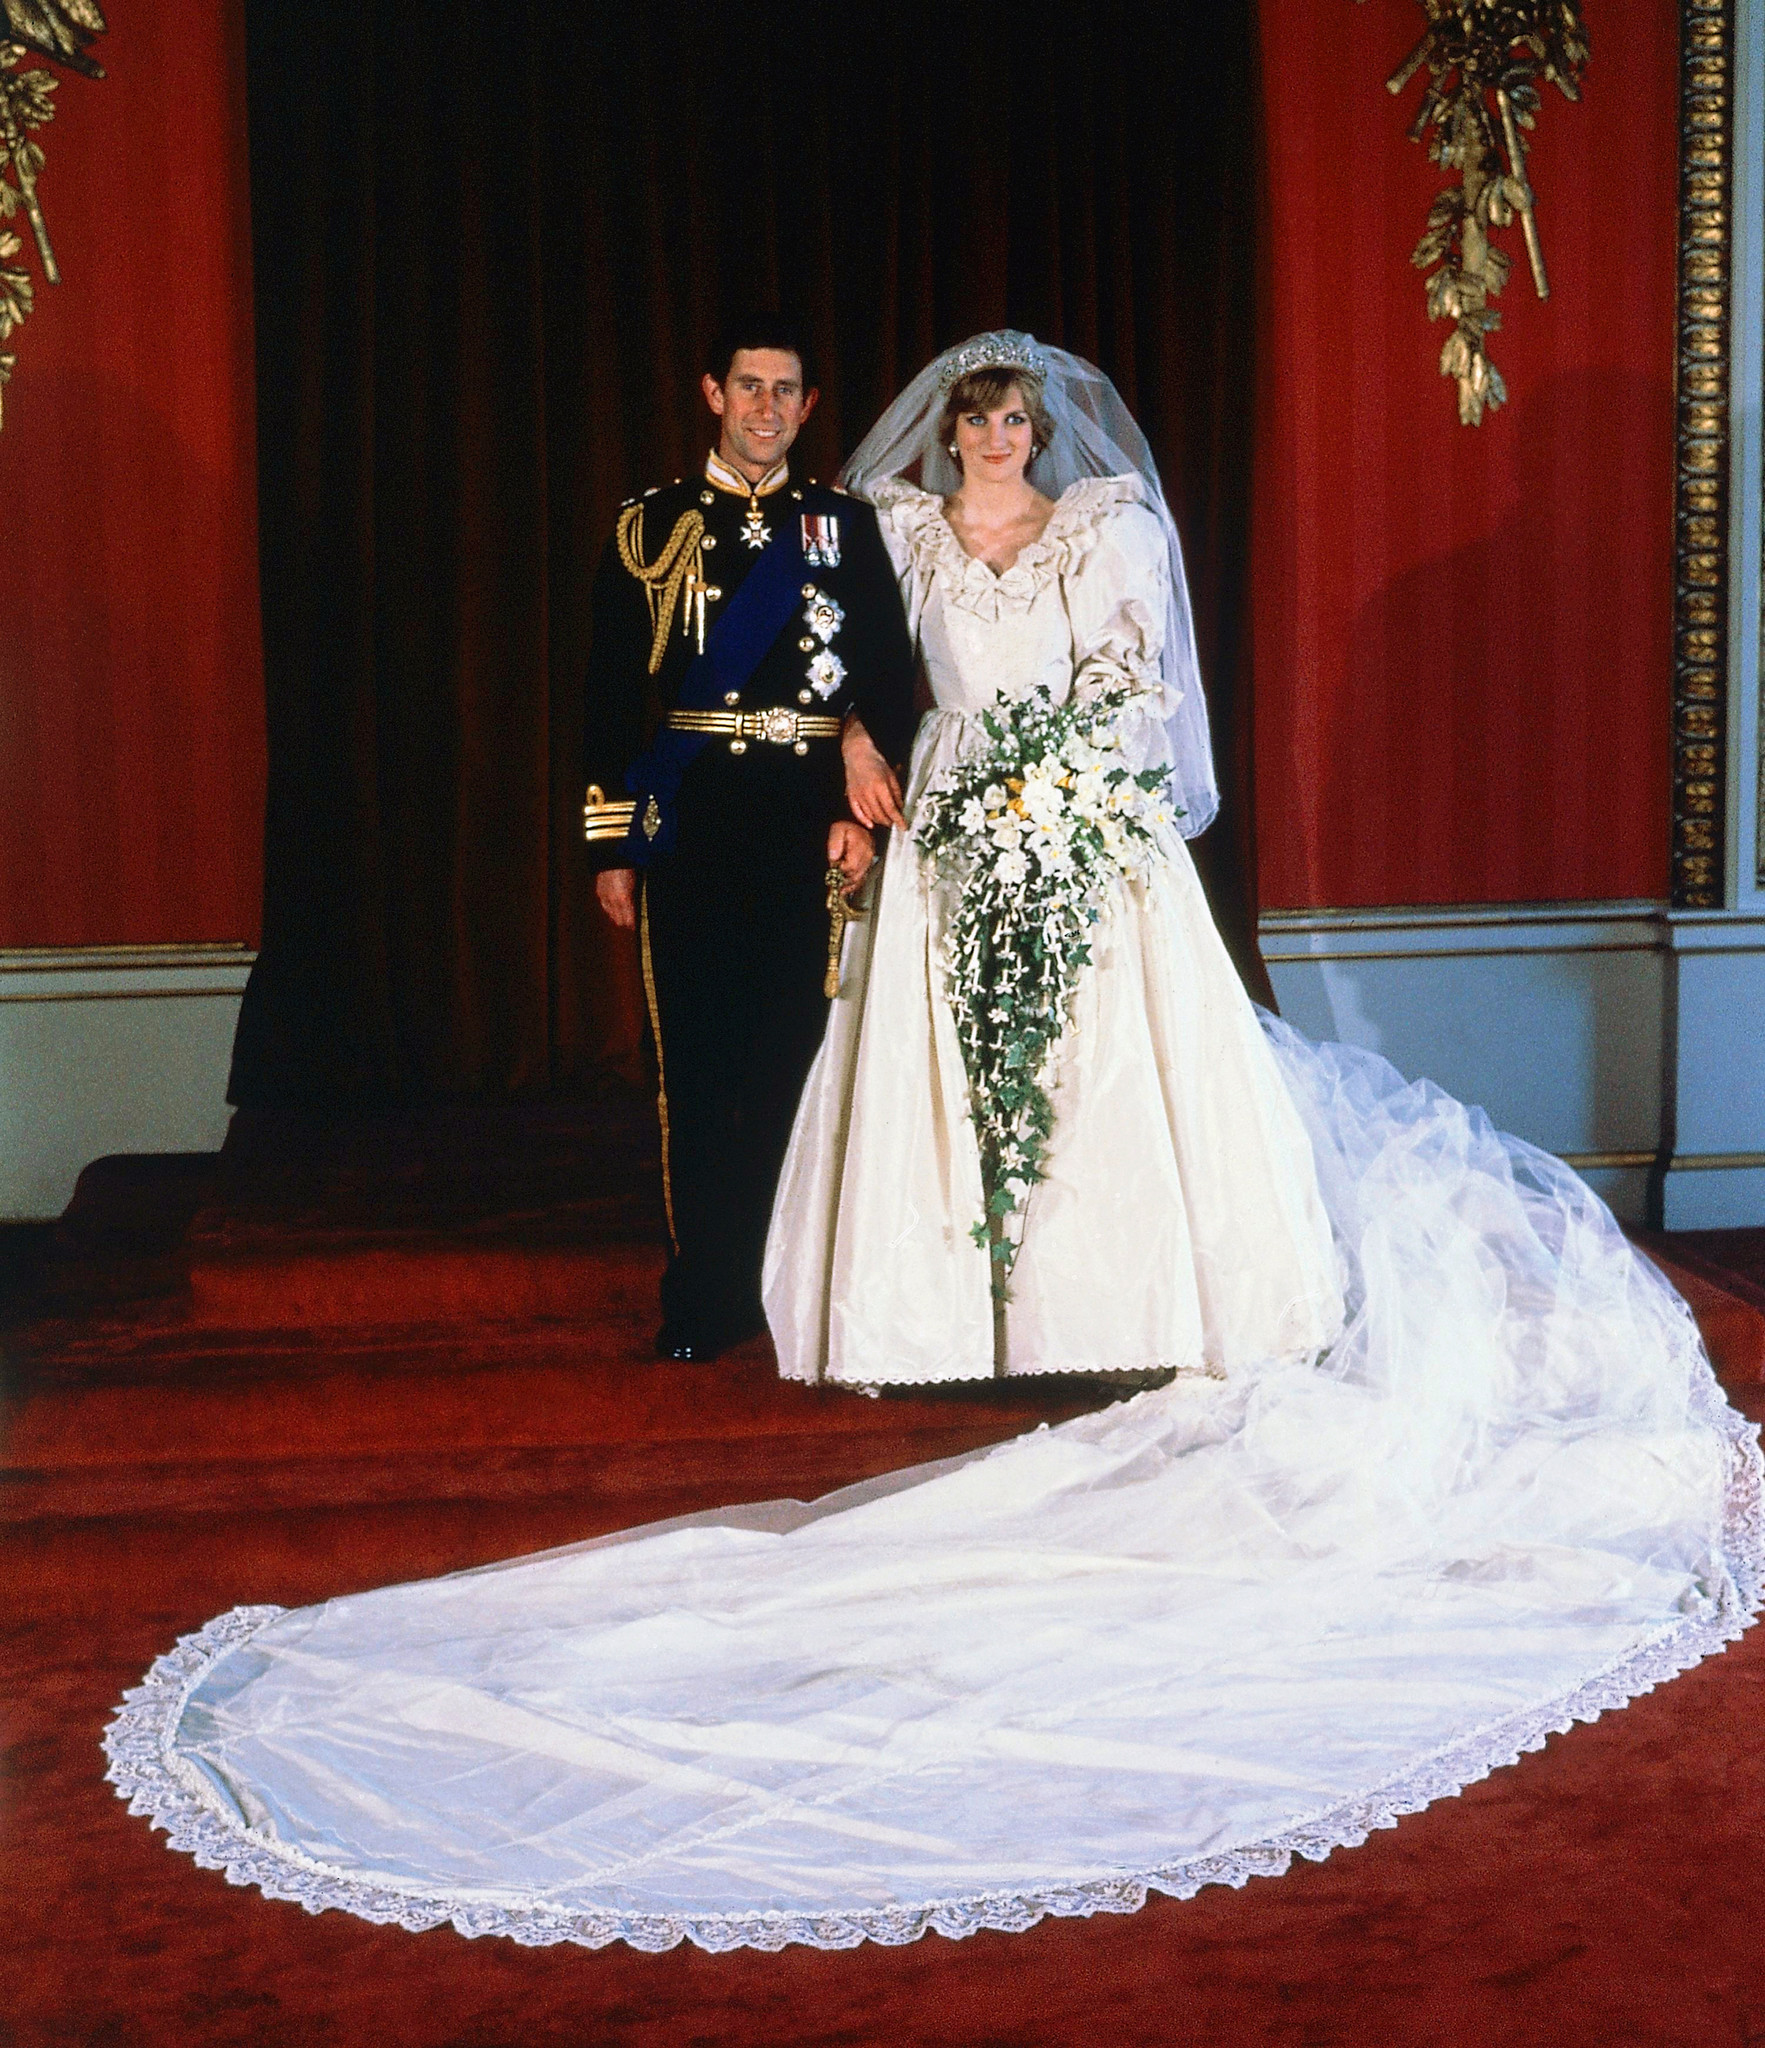 The formal wedding portrait of Prince Charles and Diana, Princess of Wales, taken at Buckingham Palace on July 29, 1981, after their marriage at Saint Paul's Cathedral, London.